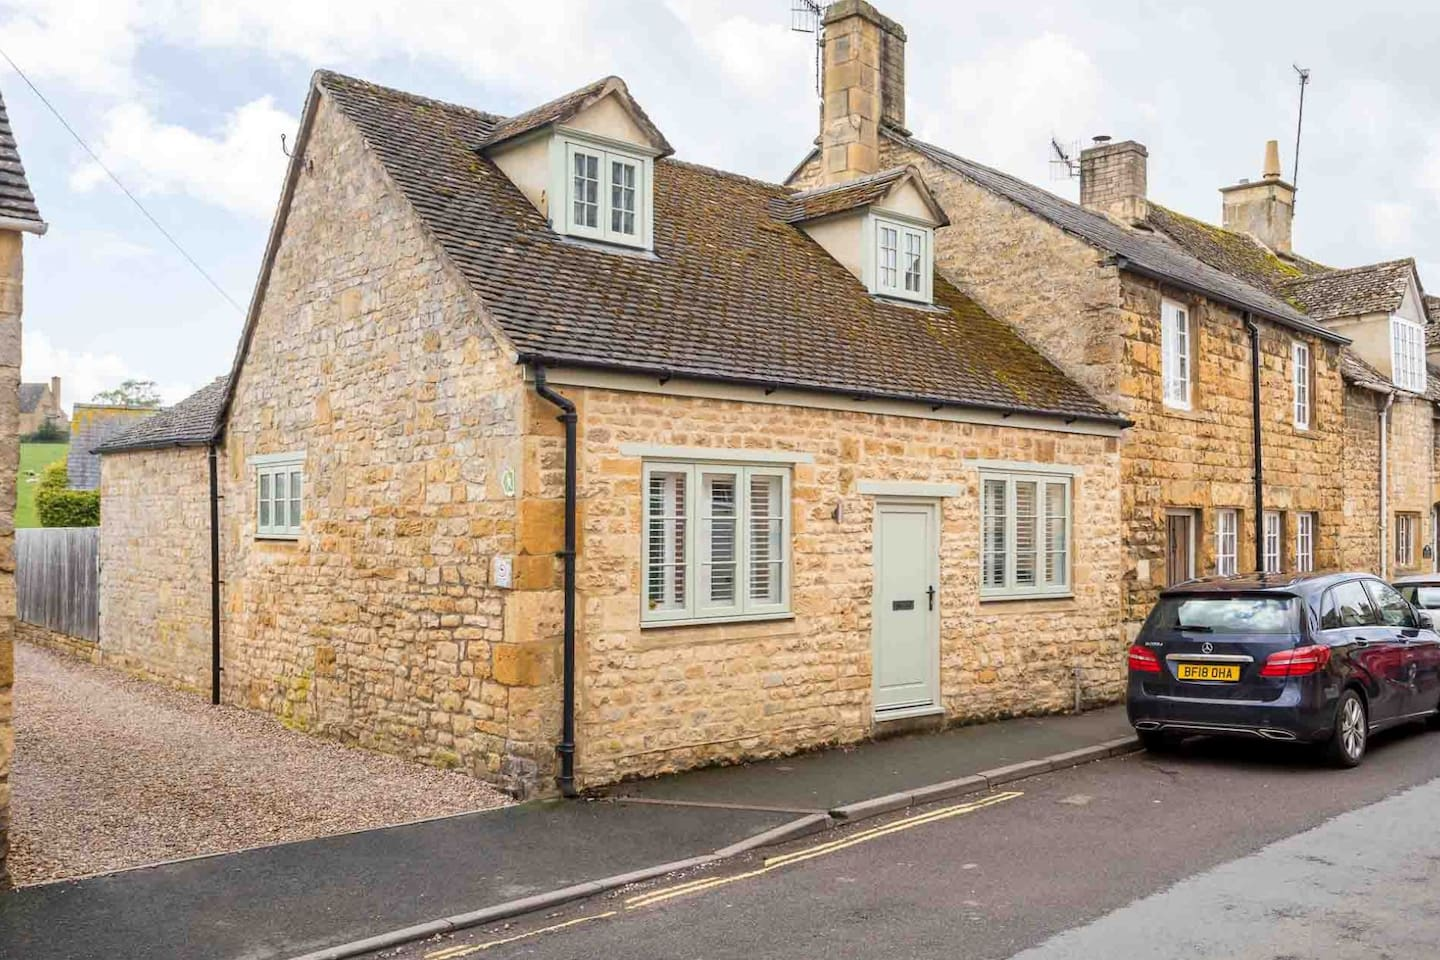 The stunning Brook Cottage in Chipping Campden